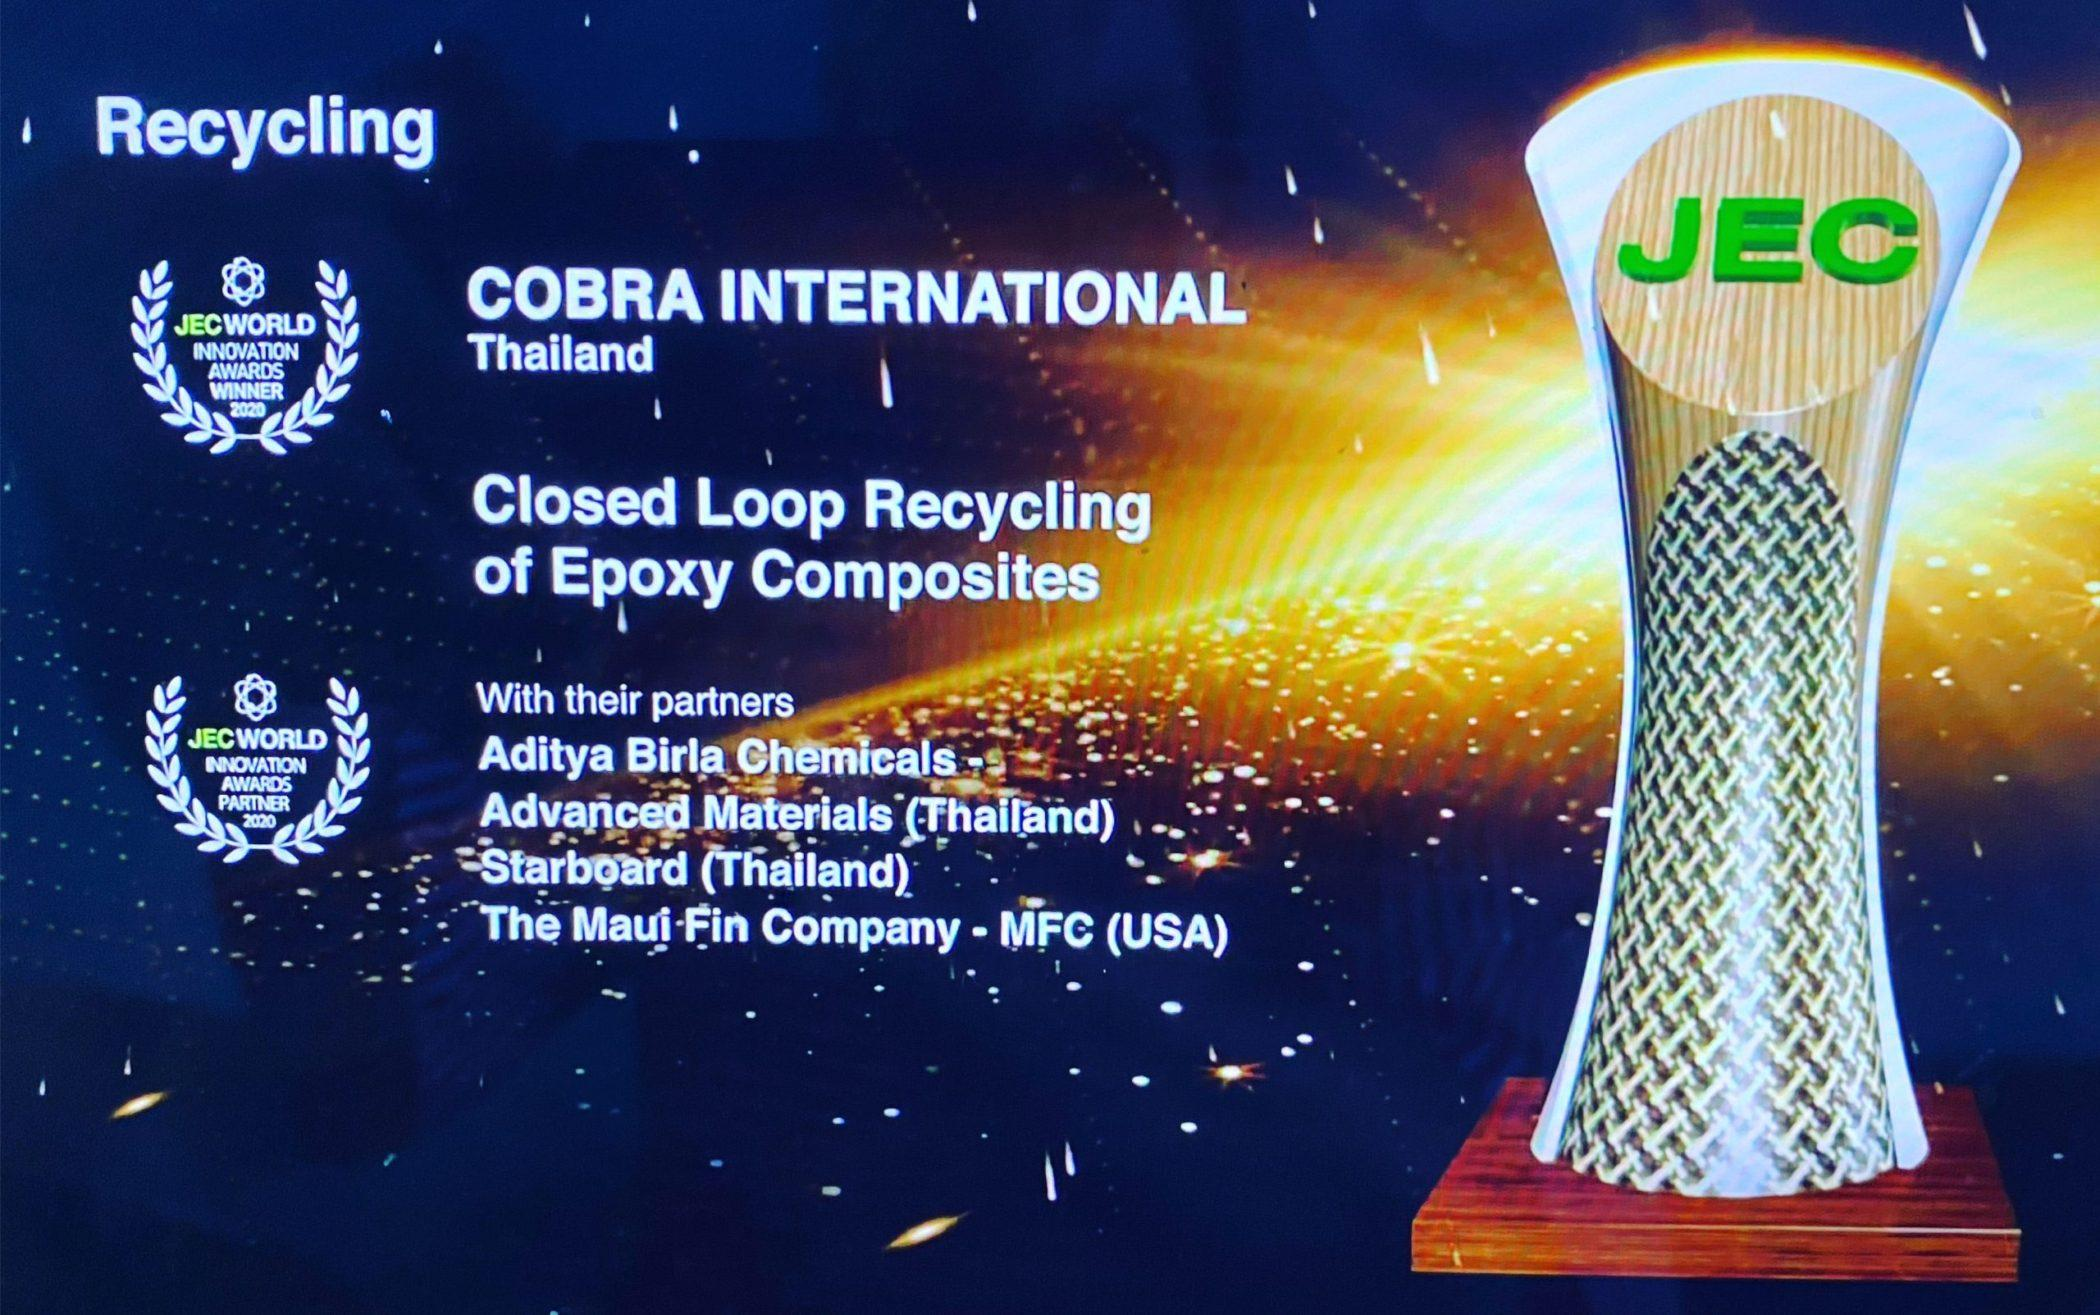 Betacryl Pure Acrylic Stone loop recycling of epoxy parts technology wins jec